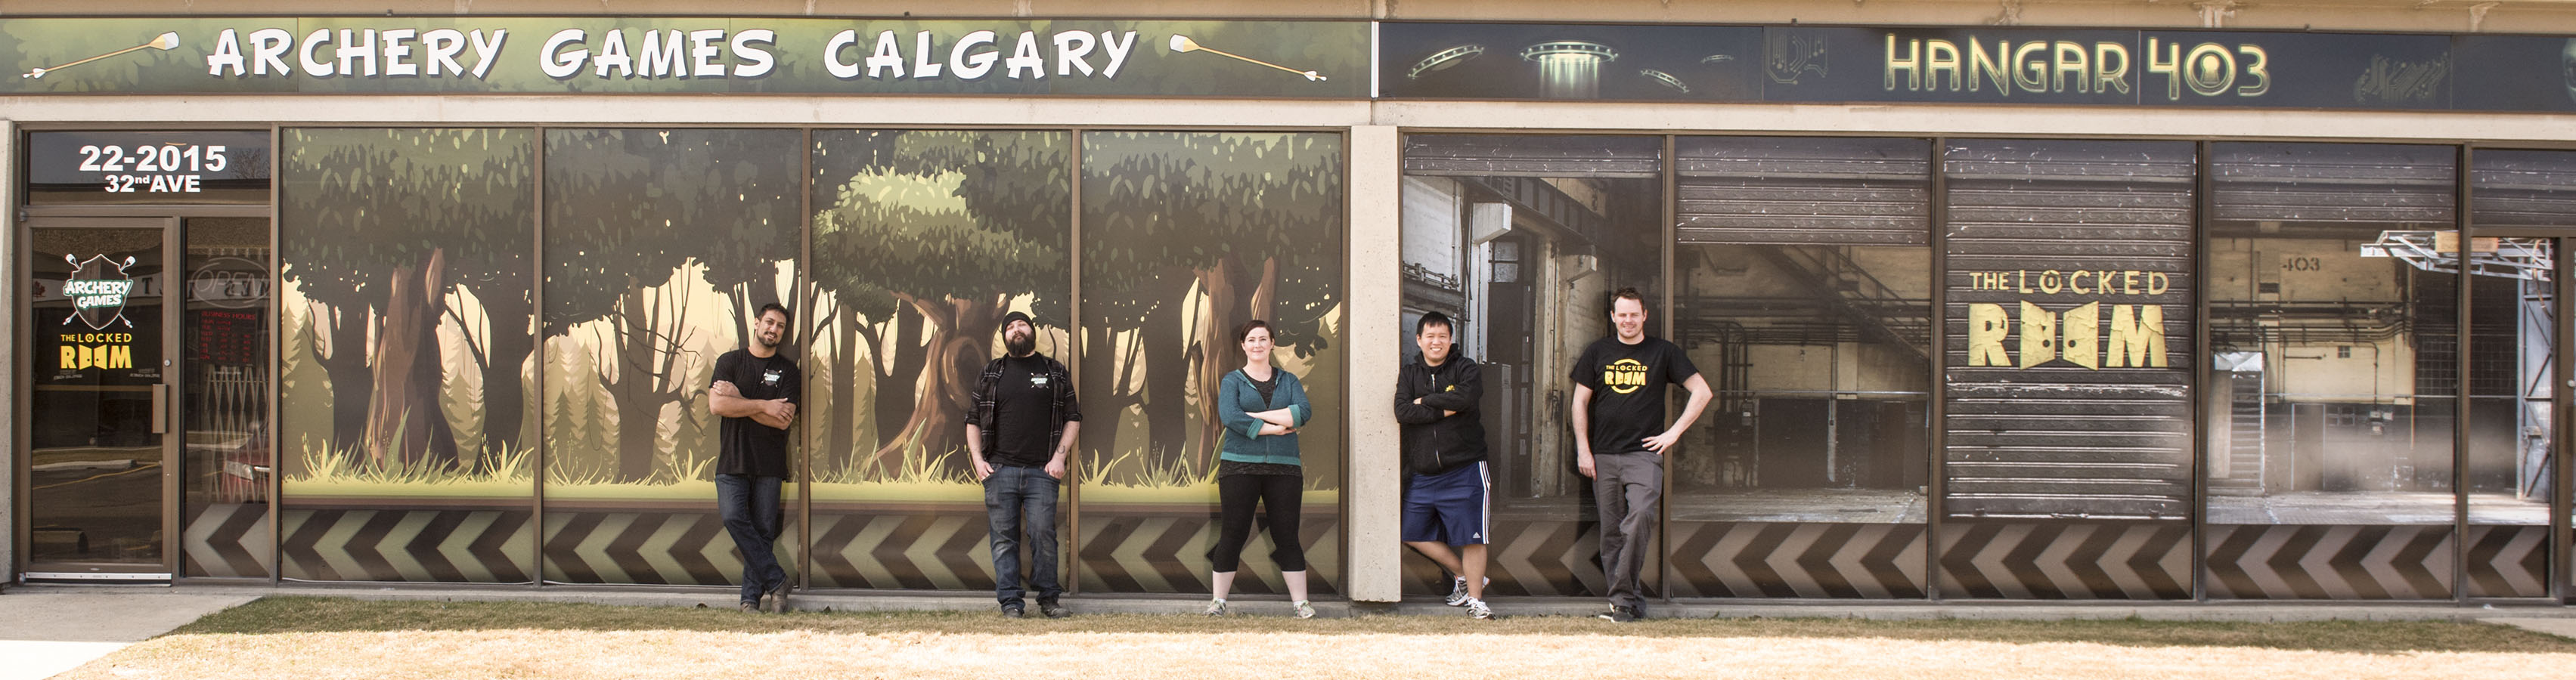 Hangar 403 & Archery Games Calgary outside photo with staff